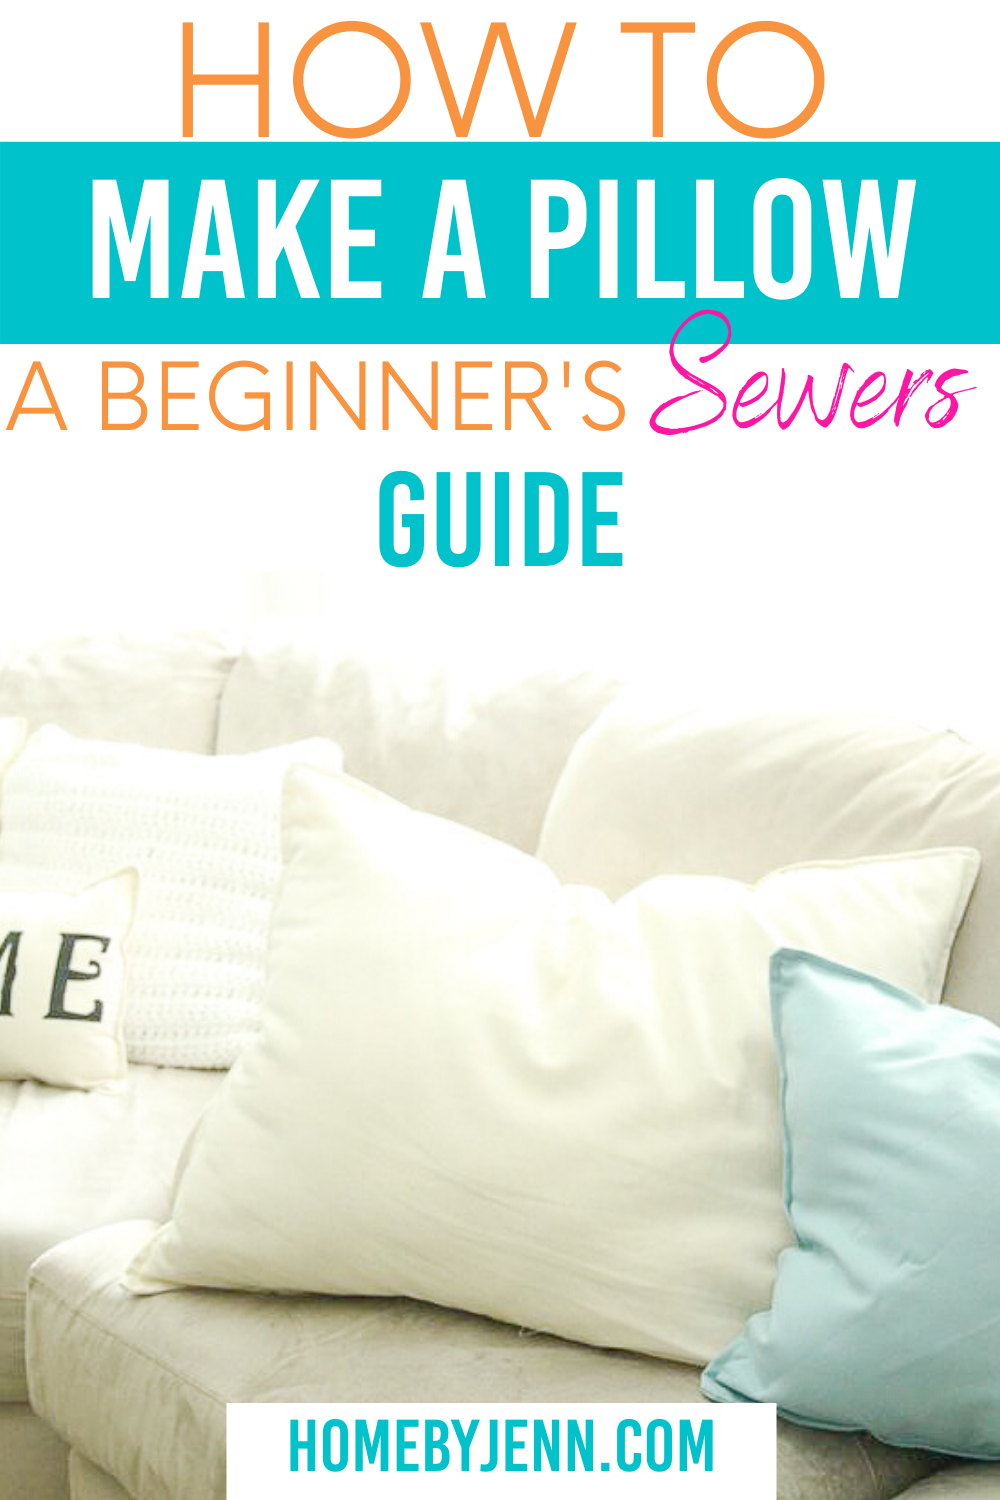 Learn how to make a pillow with stuffing in this DIY sewing tutorial with video. This pillow is so easy to make that you'll want to make pillows by hand after you see this tutorial. | #sew #pillow #howto #guide #beginners #easy #DIY #tutorial #stepbystep via @homebyjenn